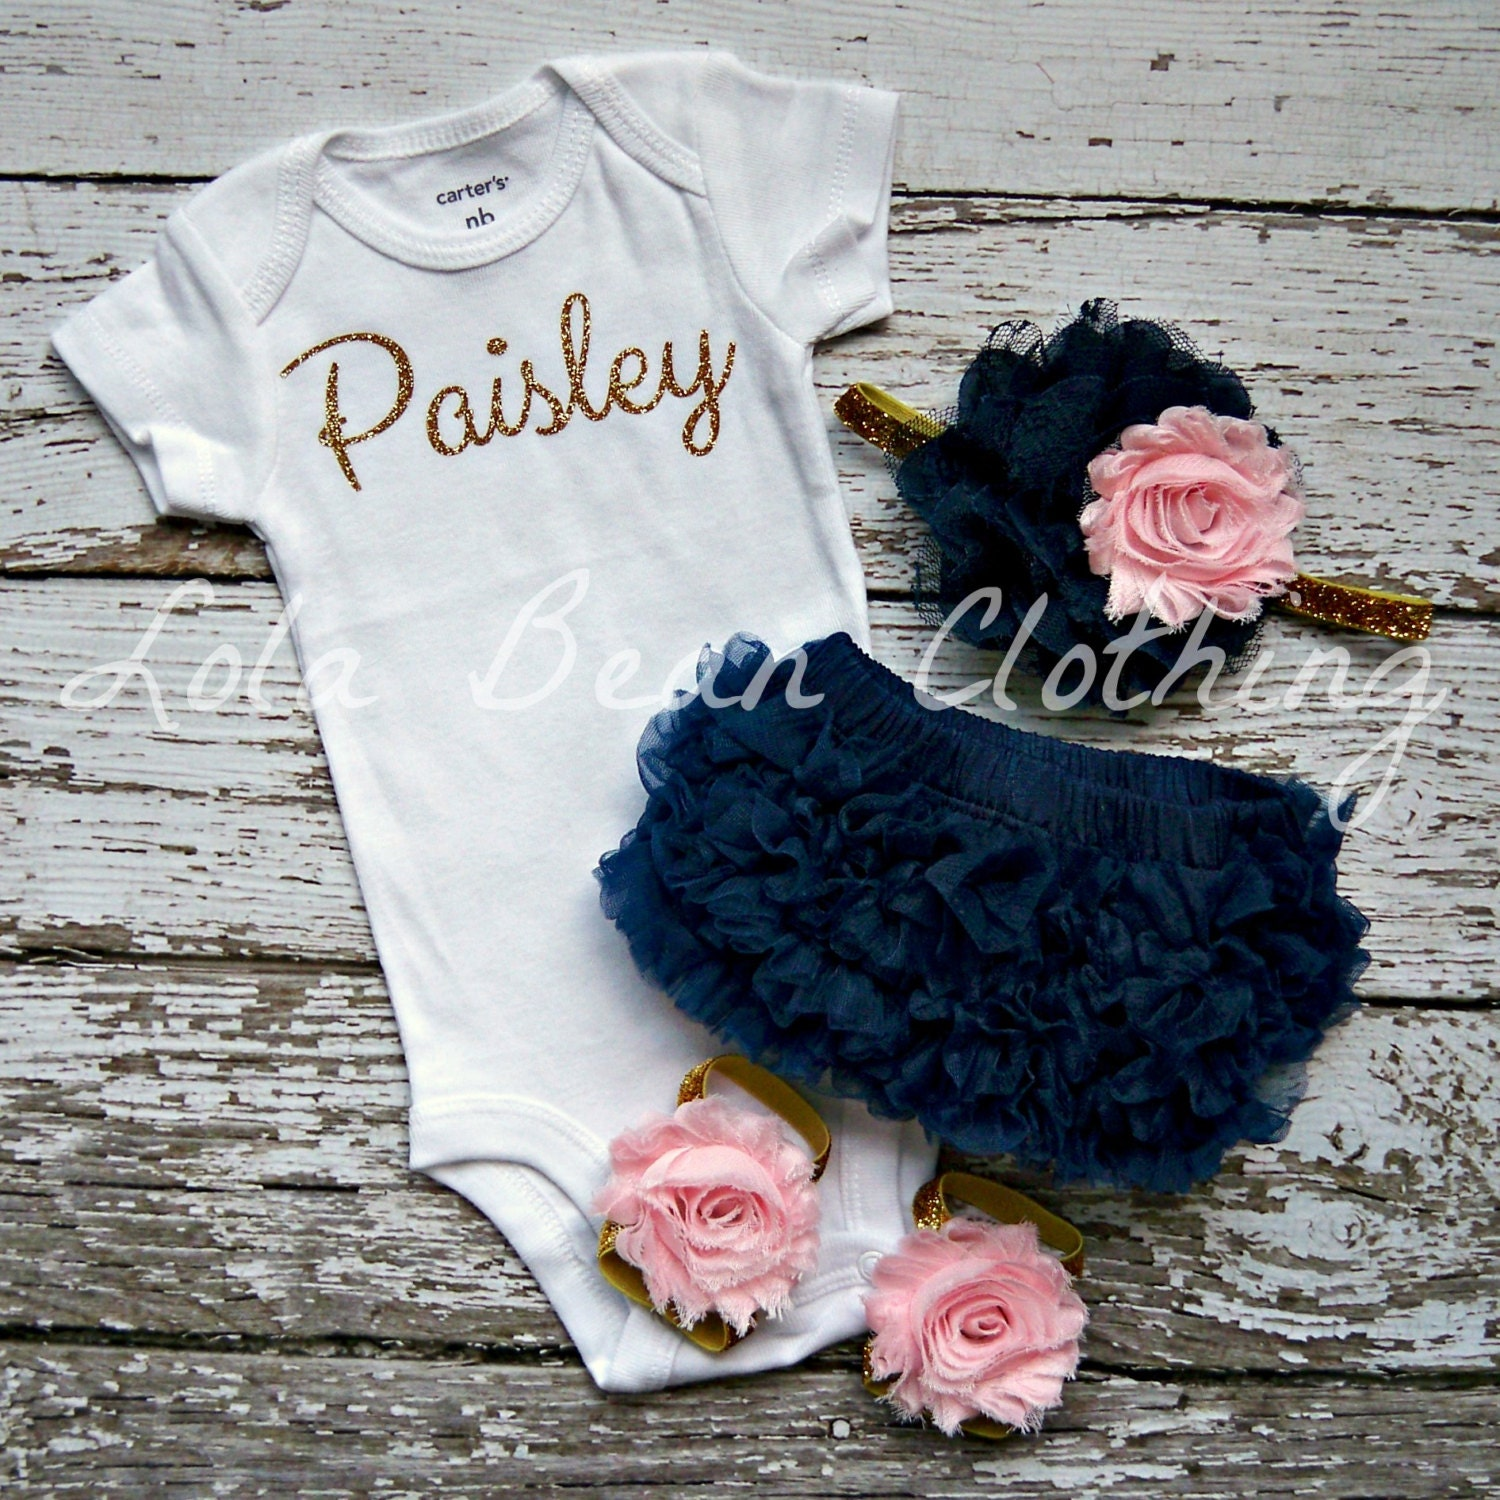 Find great deals on eBay for newborn take home outfit. Shop with confidence.